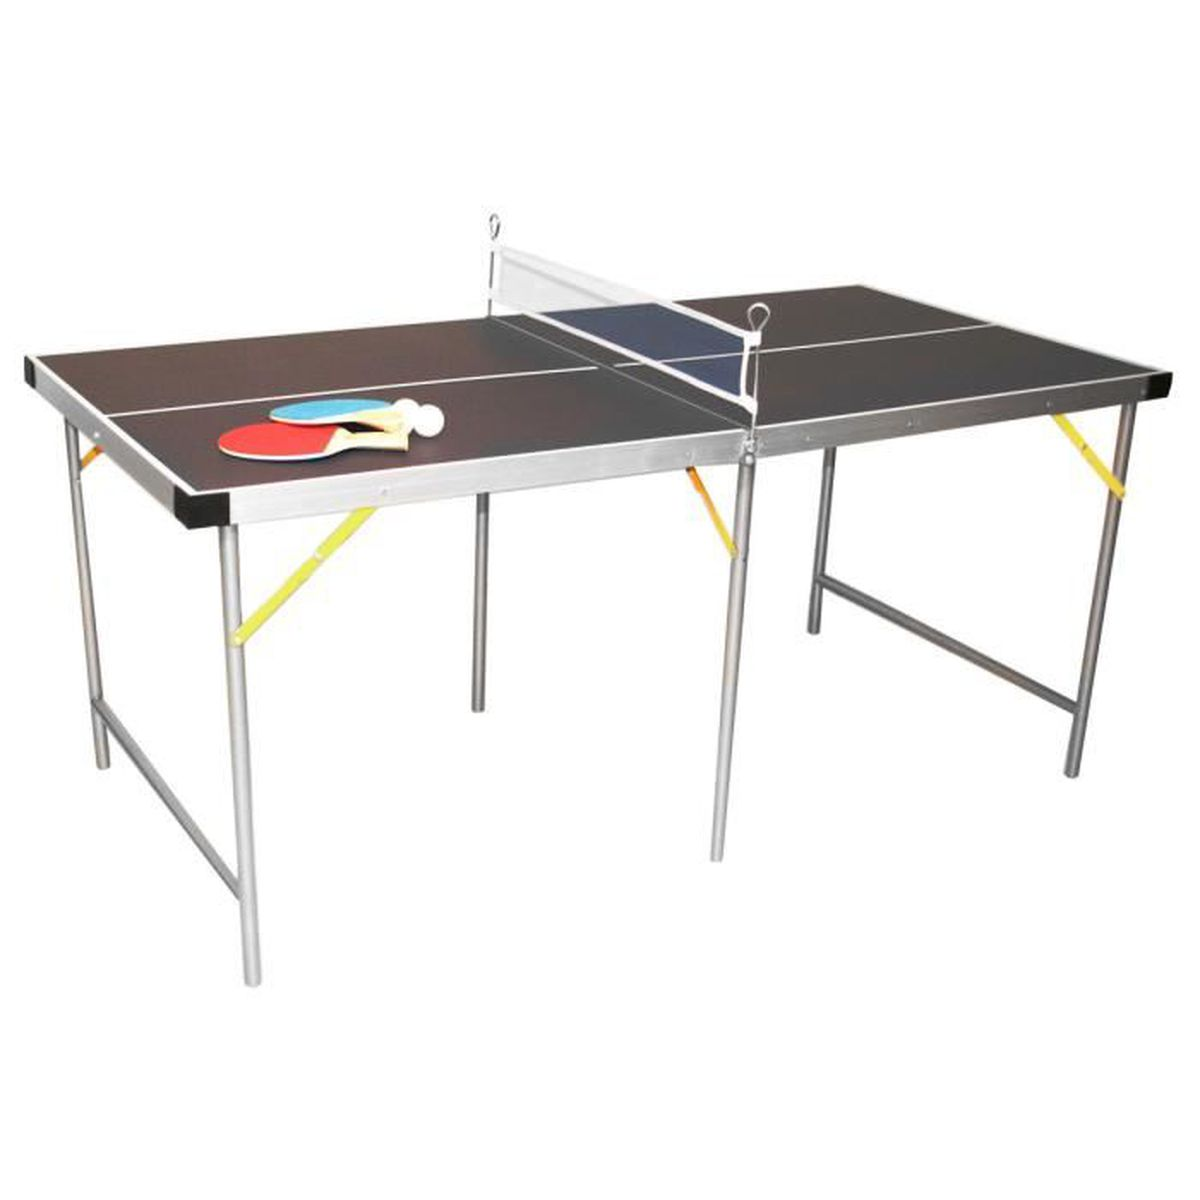 table de ping pong pliable vert 152 cm prix pas cher. Black Bedroom Furniture Sets. Home Design Ideas